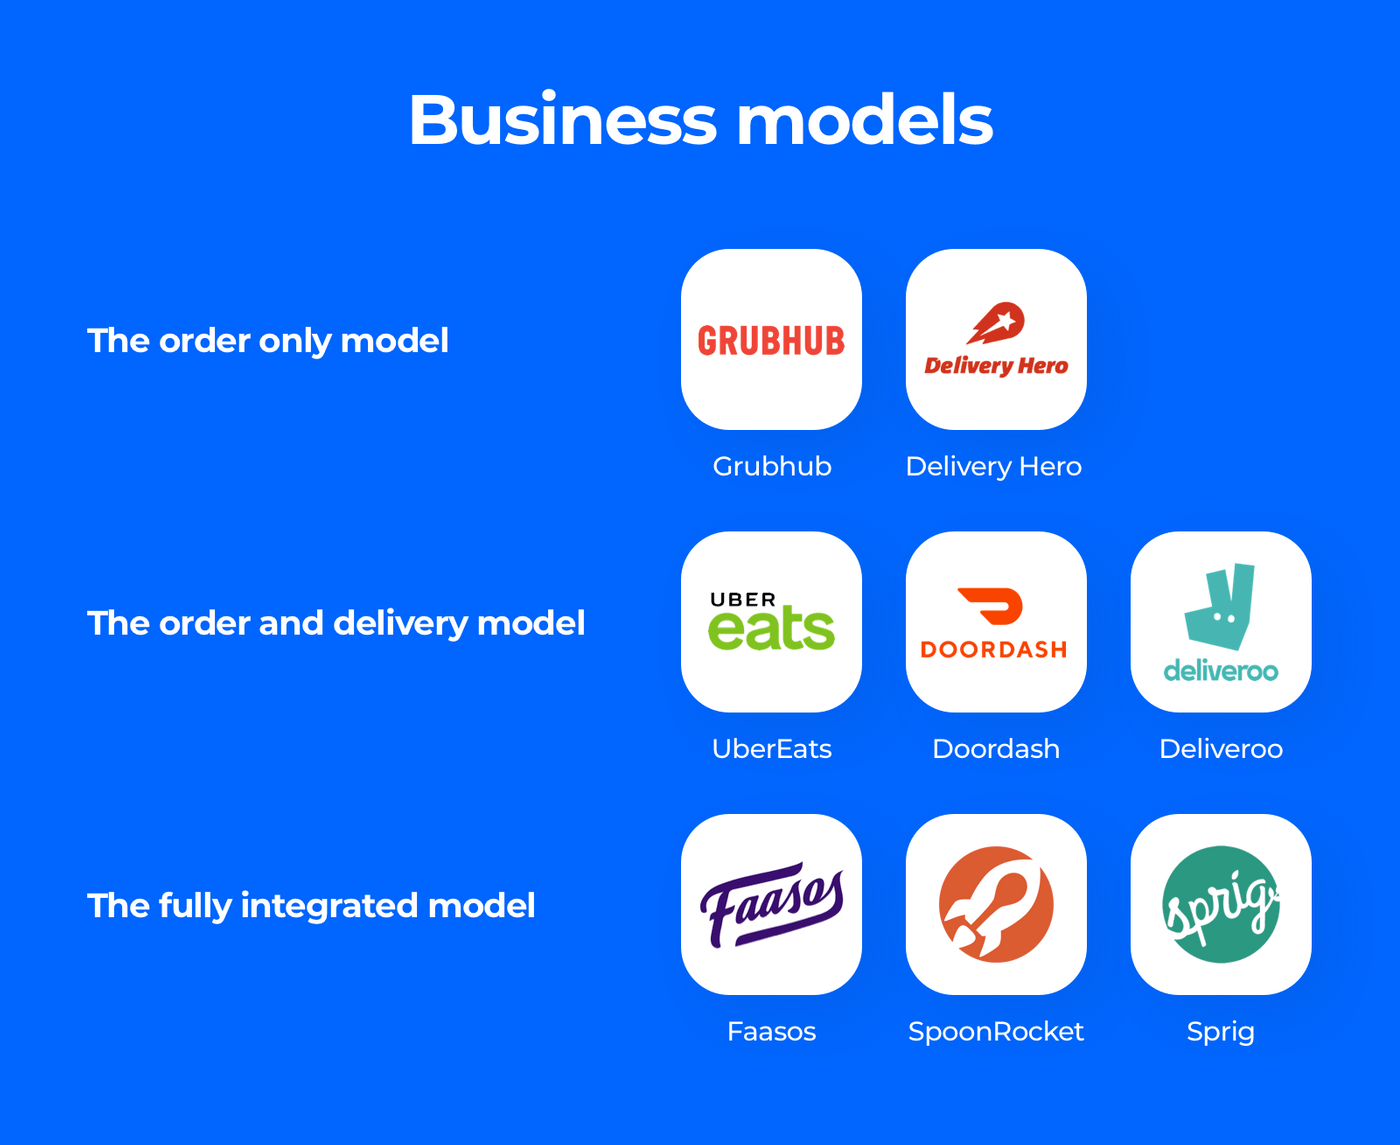 How to make a food ordering website: Business models